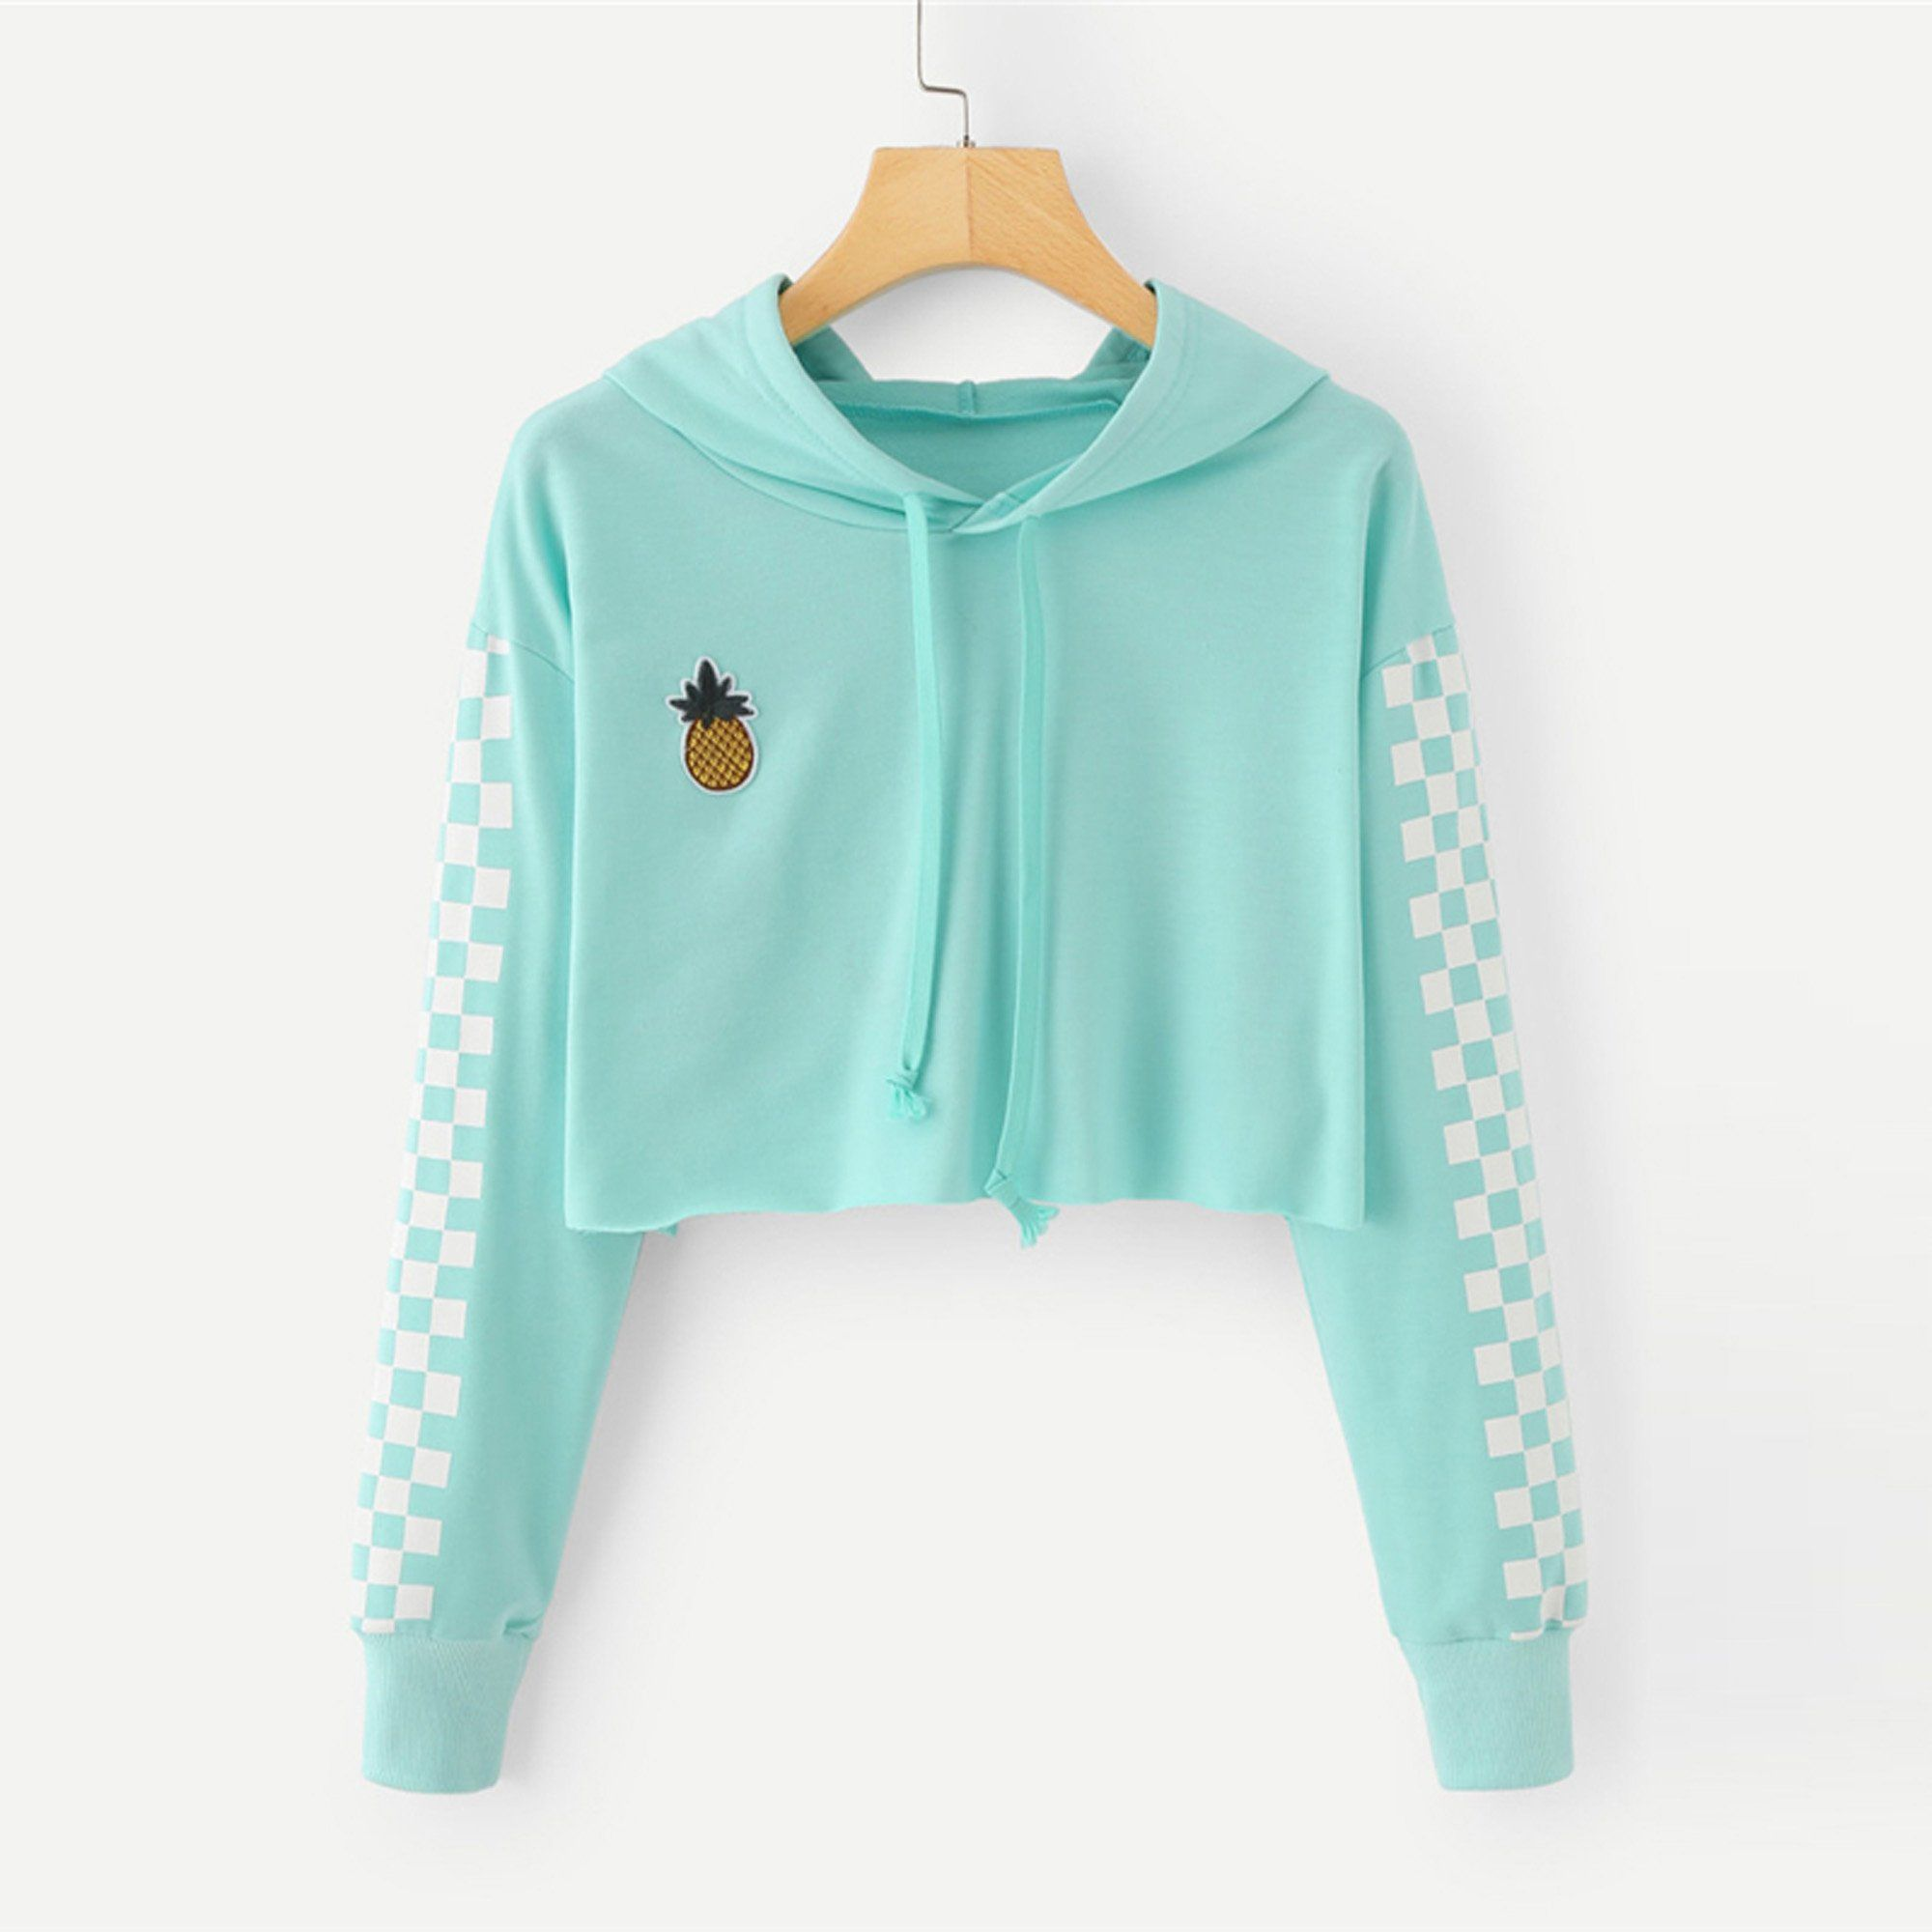 1871841058d2b Angie Pineapple Checkered Crop Top Hoodie Sweater in Mint Turquoise –  Glamanti Beauty